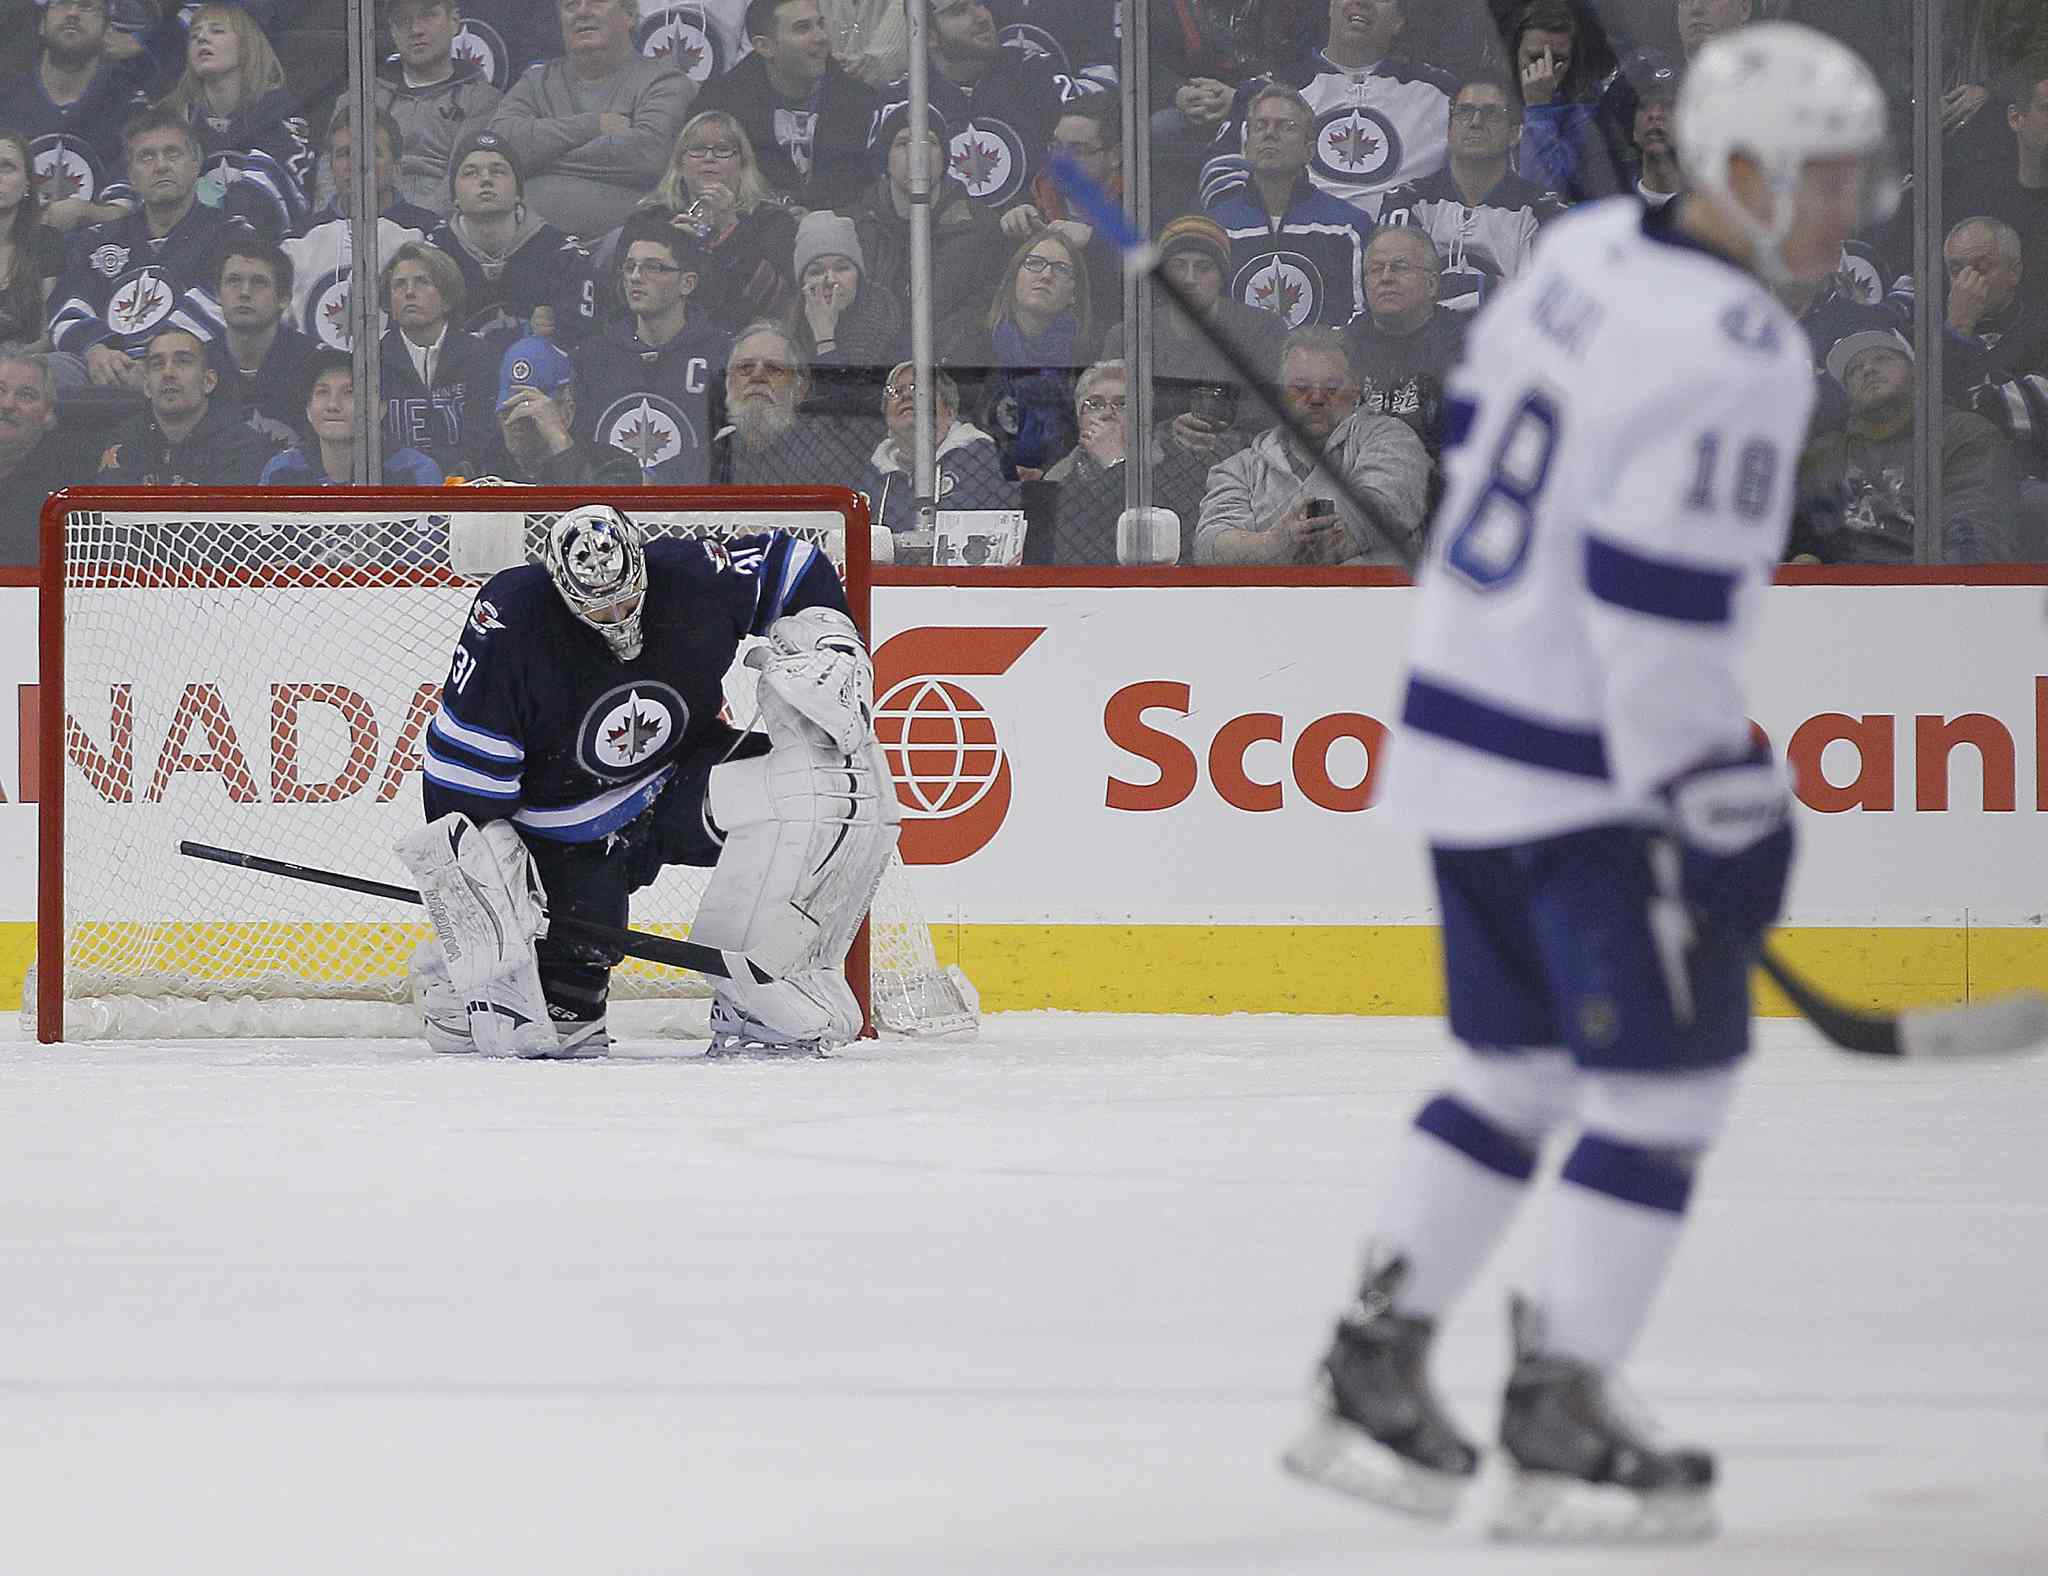 Winnipeg Jets' goaltender Ondrej Pavelec (31) hangs his head after being scored on by Tampa Bay Lightning's Ondrej Palat (18) during second period.